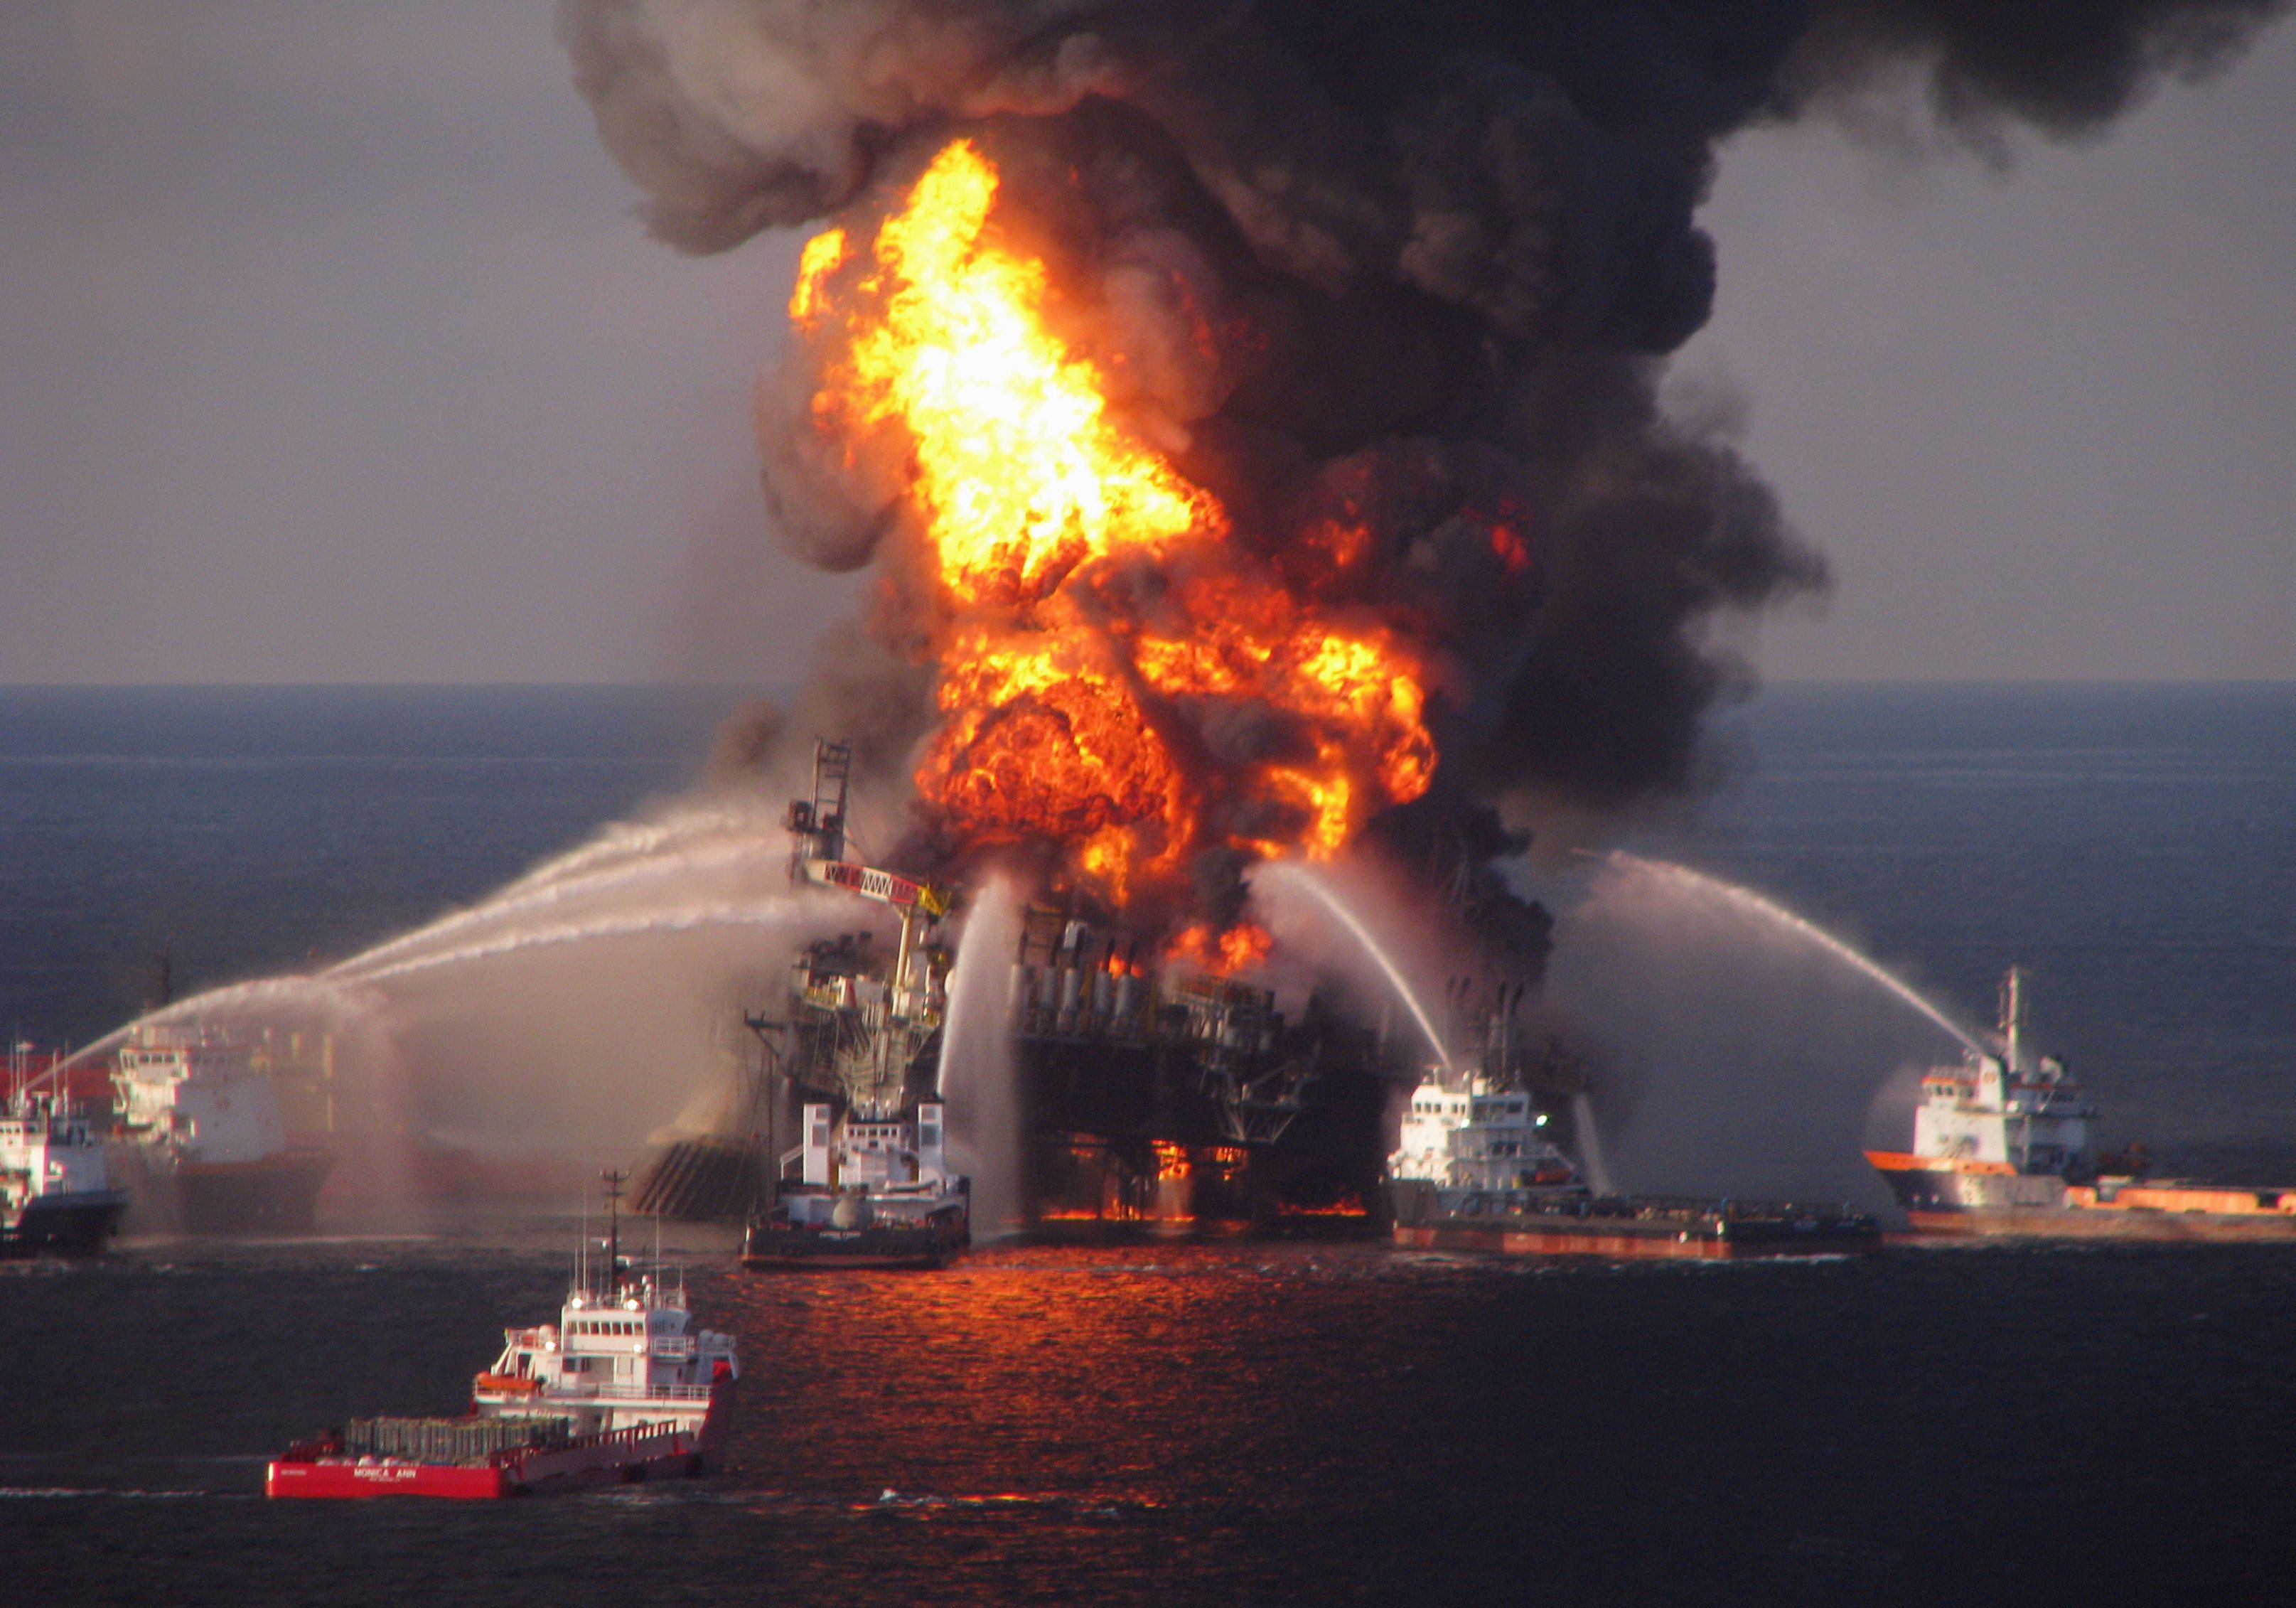 Fire boats spray water on the burning BP Deepwater Horizon offshore oil rig on April 21, 2010, in this photo provided by the